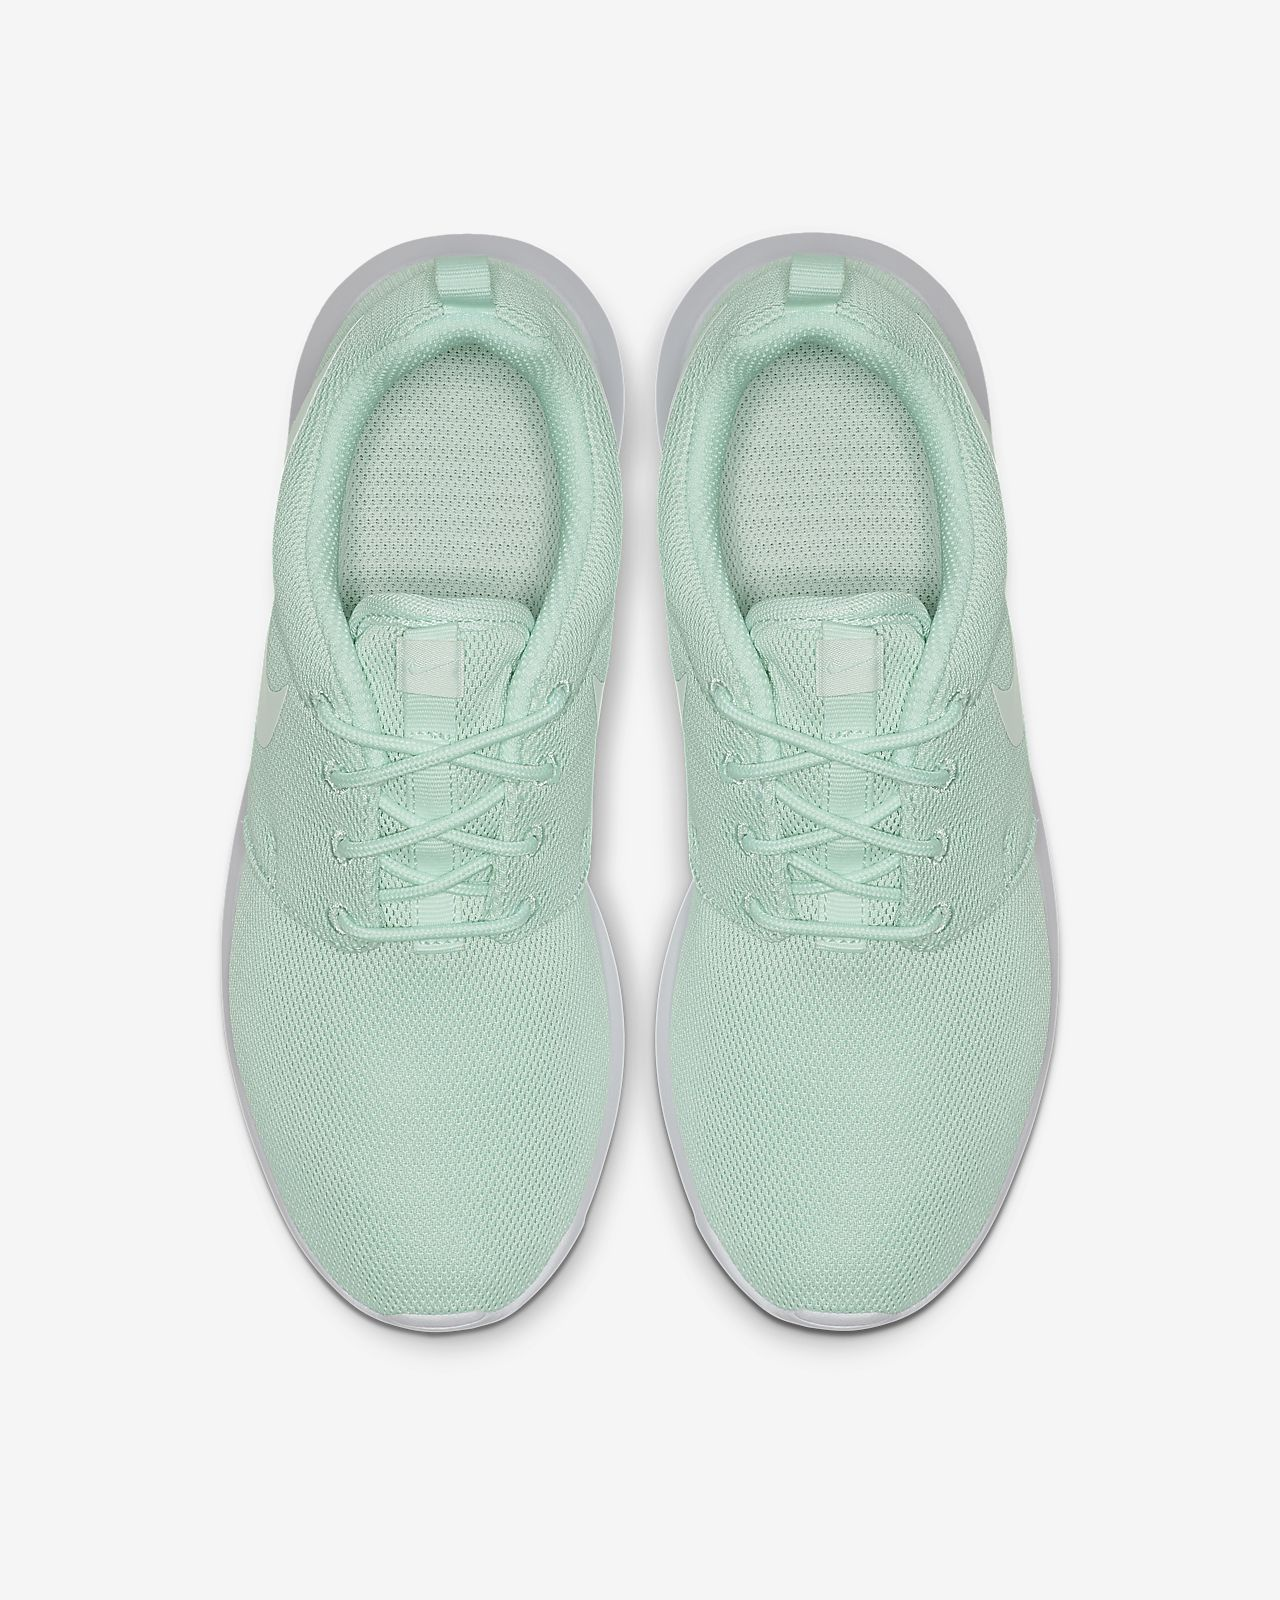 premium selection 7c077 599ad ... Nike Roshe One Women s Shoe